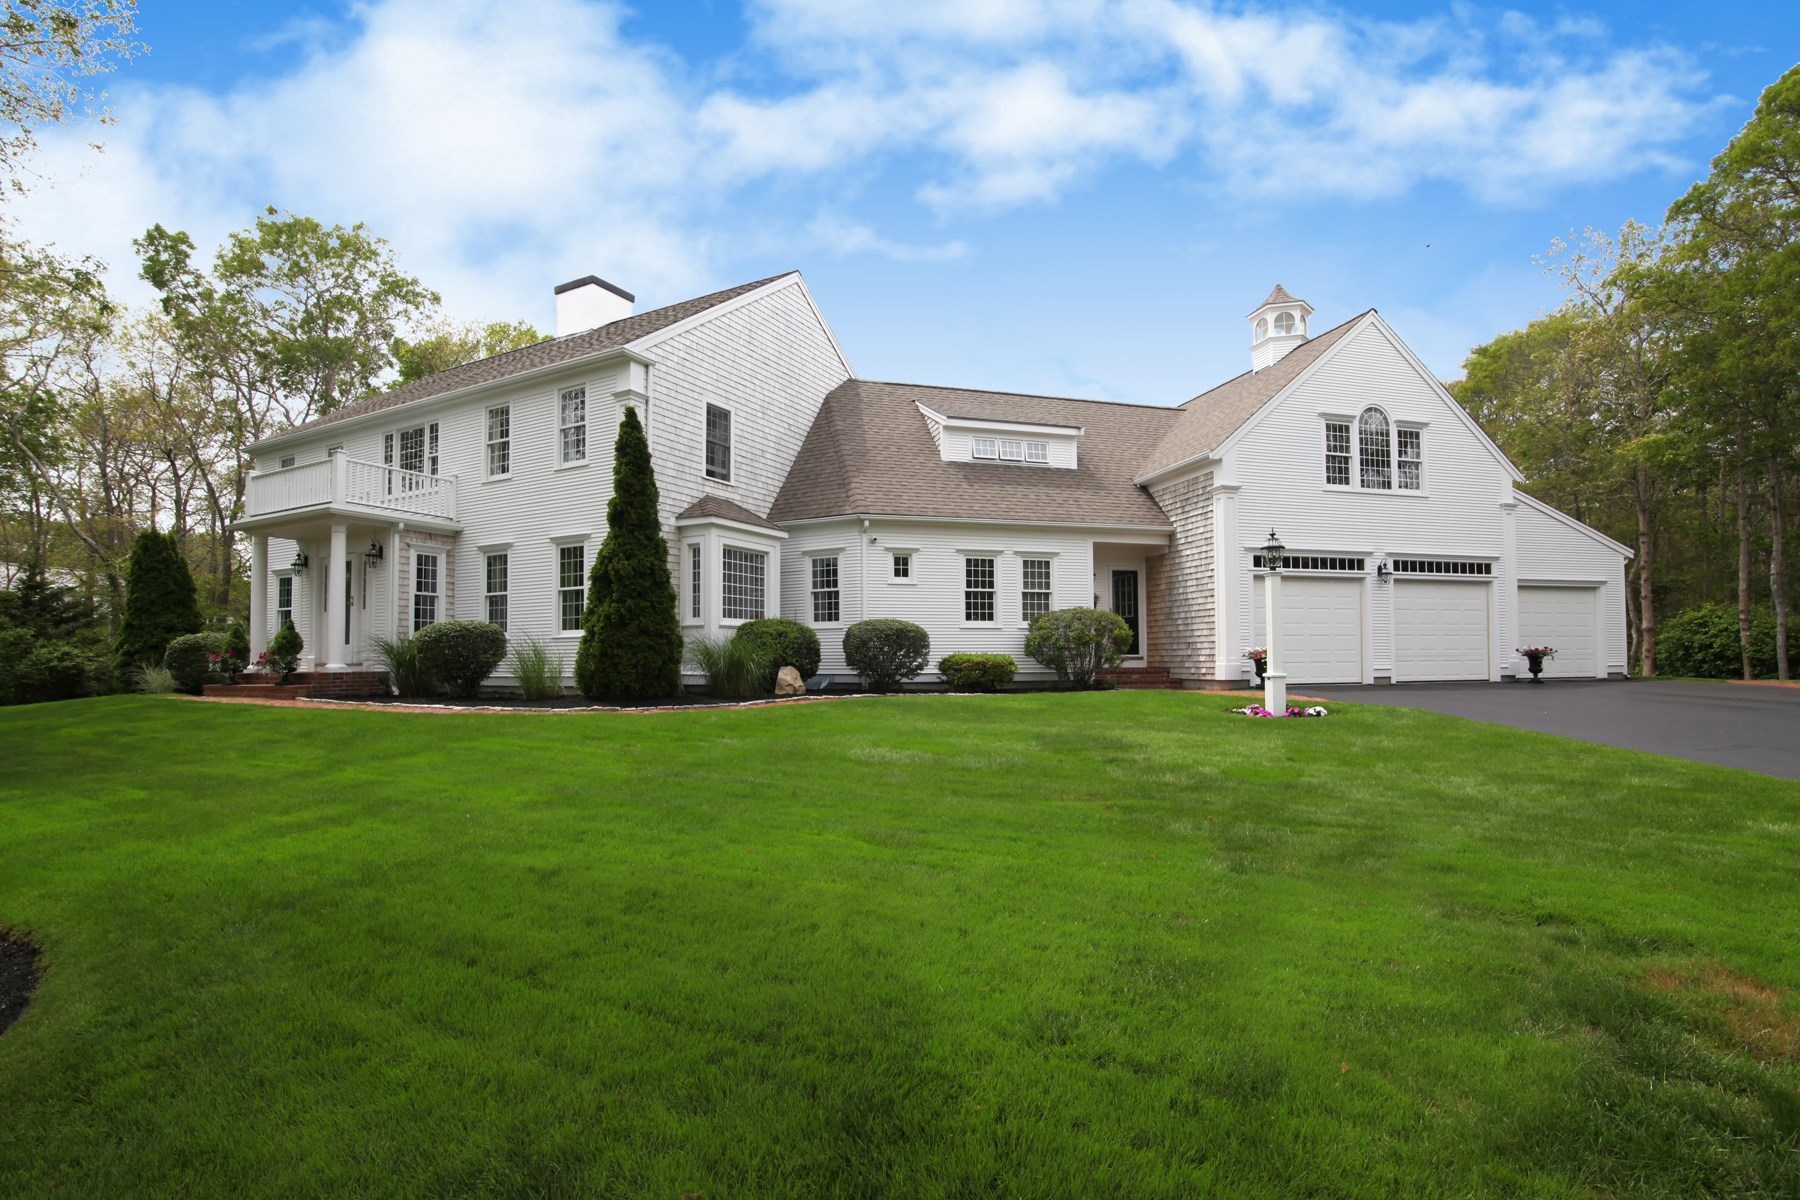 Single Family Home for Sale at Salt Water Pool with Private Beach 13 Lost Meadows East Sandwich, Massachusetts, 02537 United States